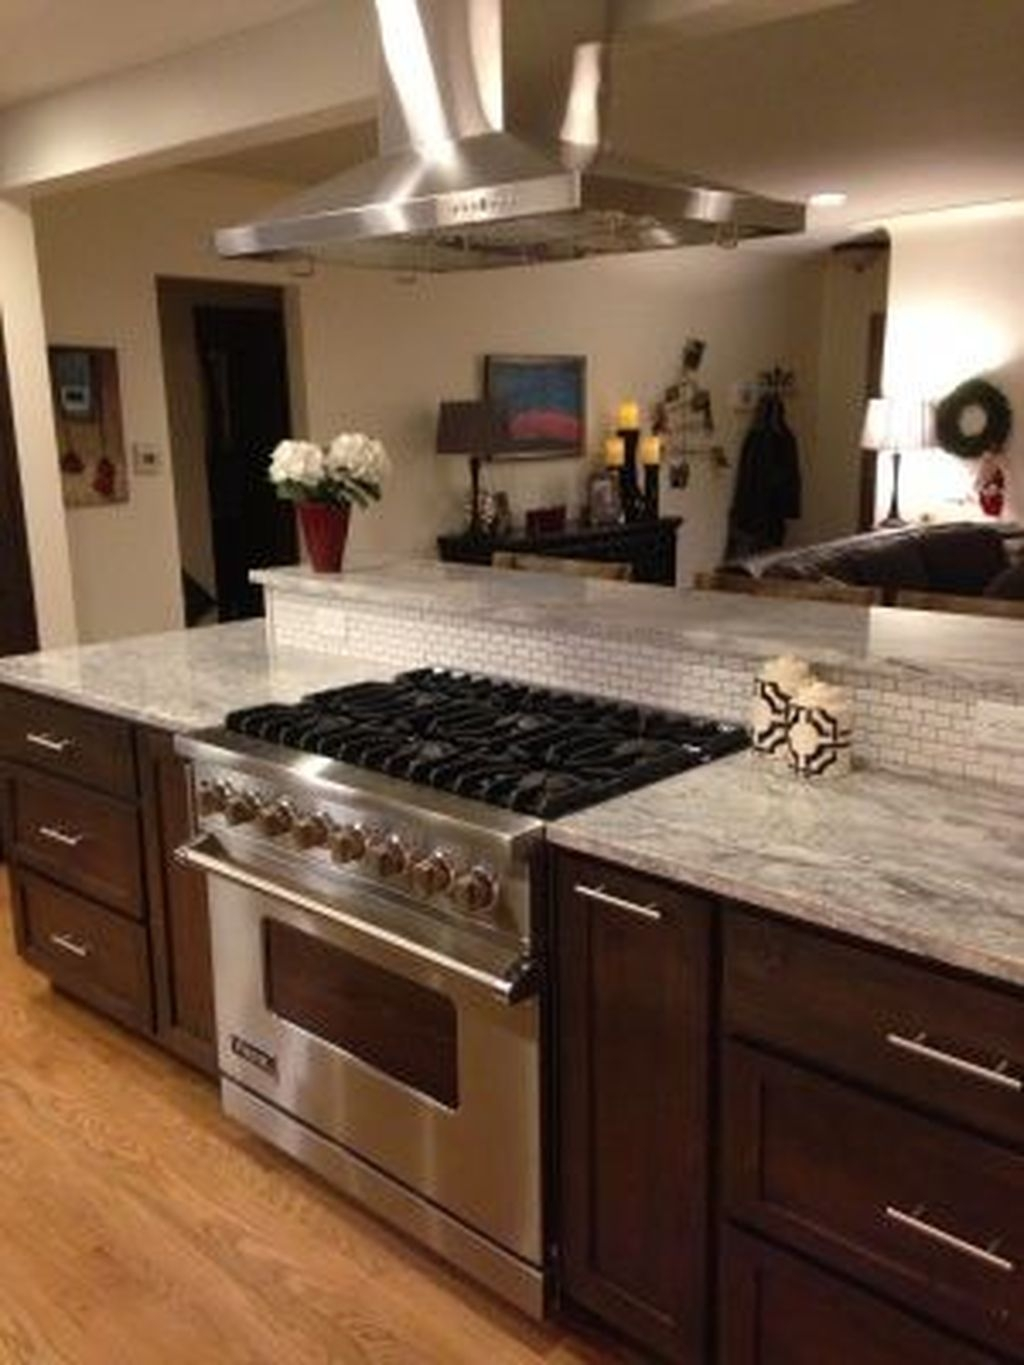 Simple Kitchen Remodeling Ideas On A Budget16